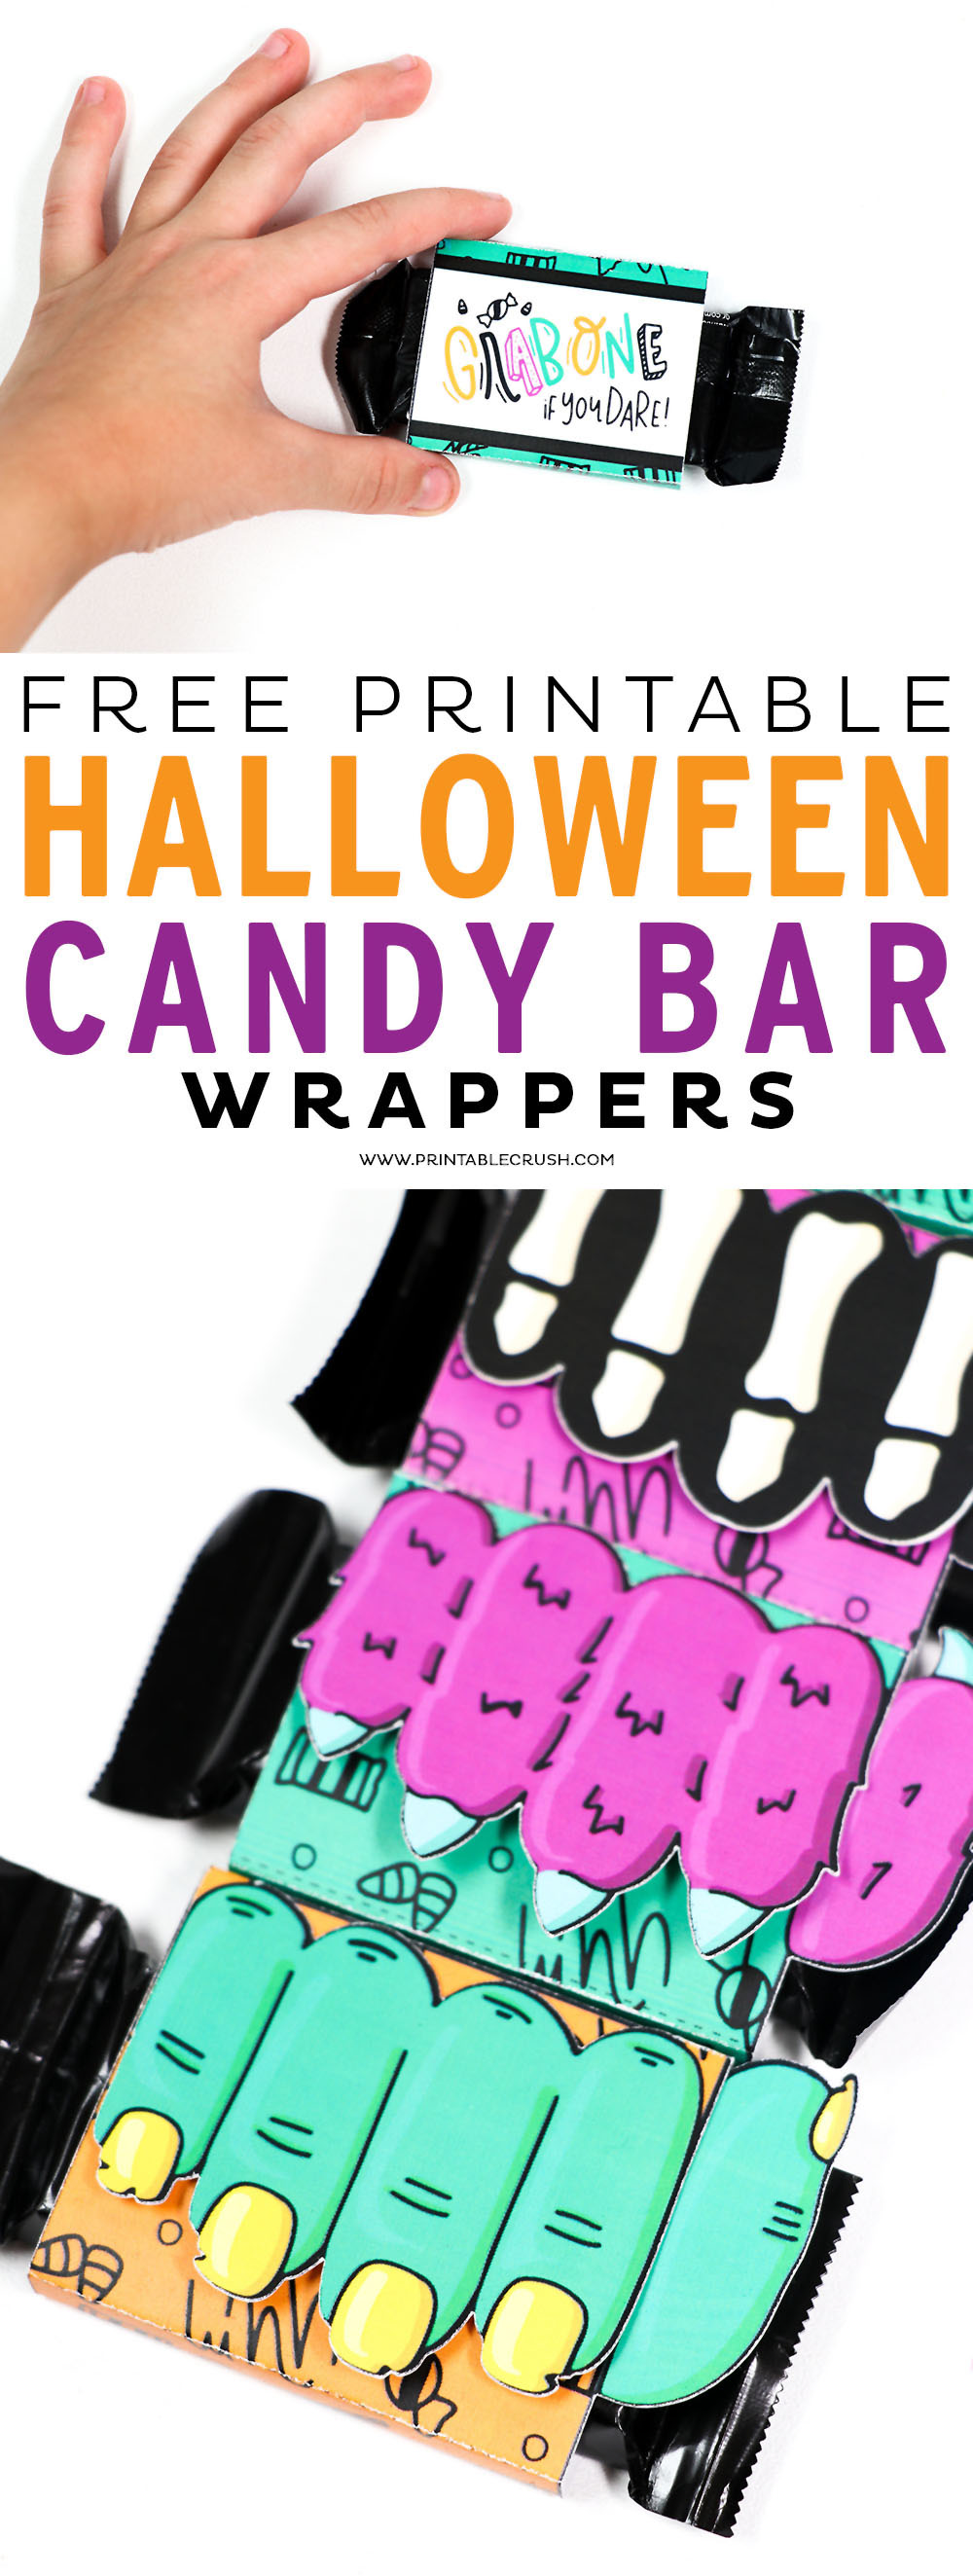 Make these Printable Halloween Candy Bar Wrappers for your next Halloween Party or give them out to trick or treaters! #cricutmade #printandcut #halloween #halloweenprintables #halloweenpartyfavors